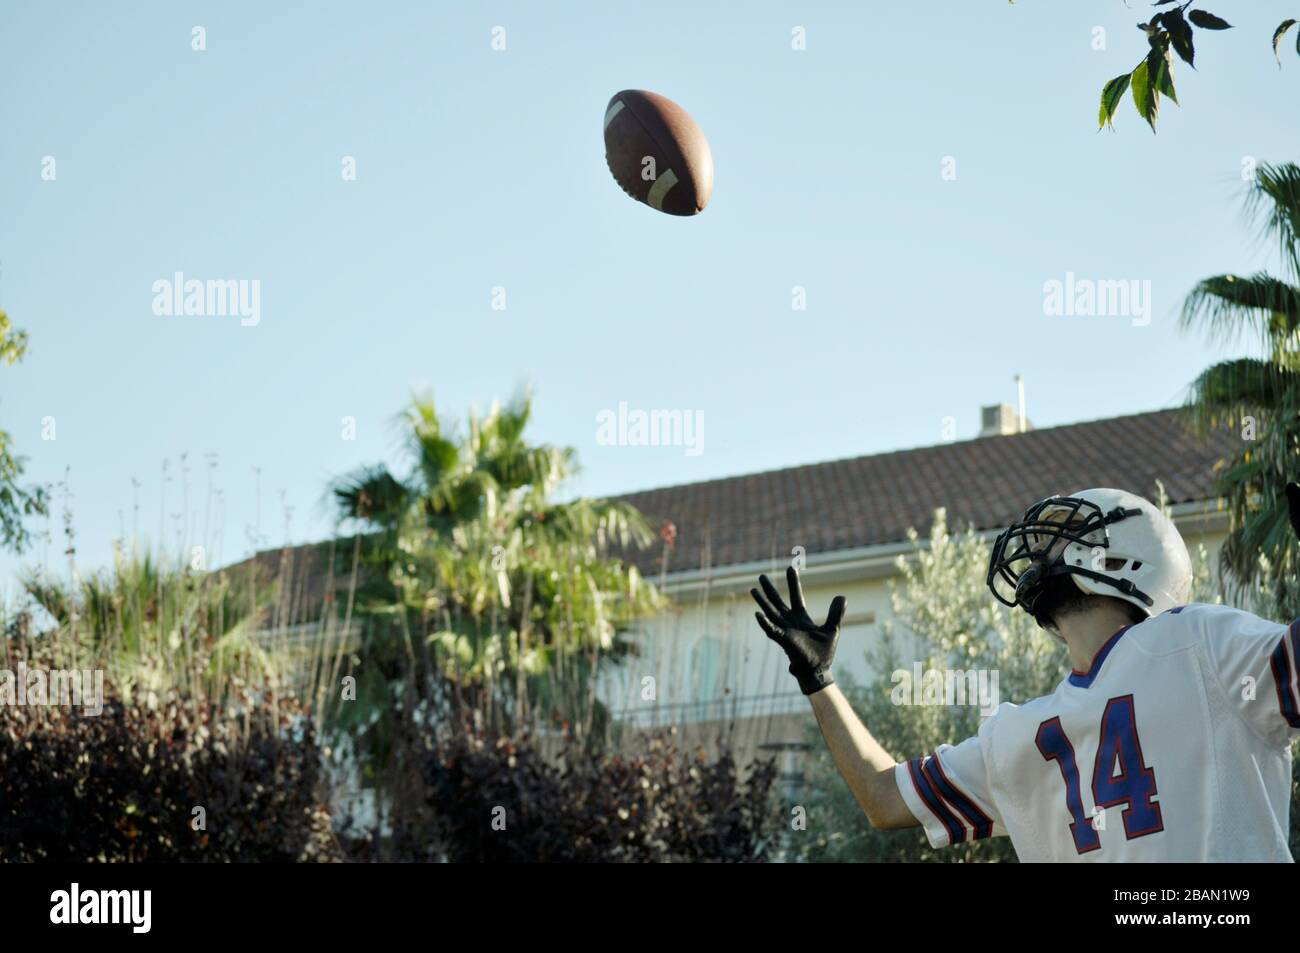 American football player in a game. Player catching an American football ball in a park. Stock Photo